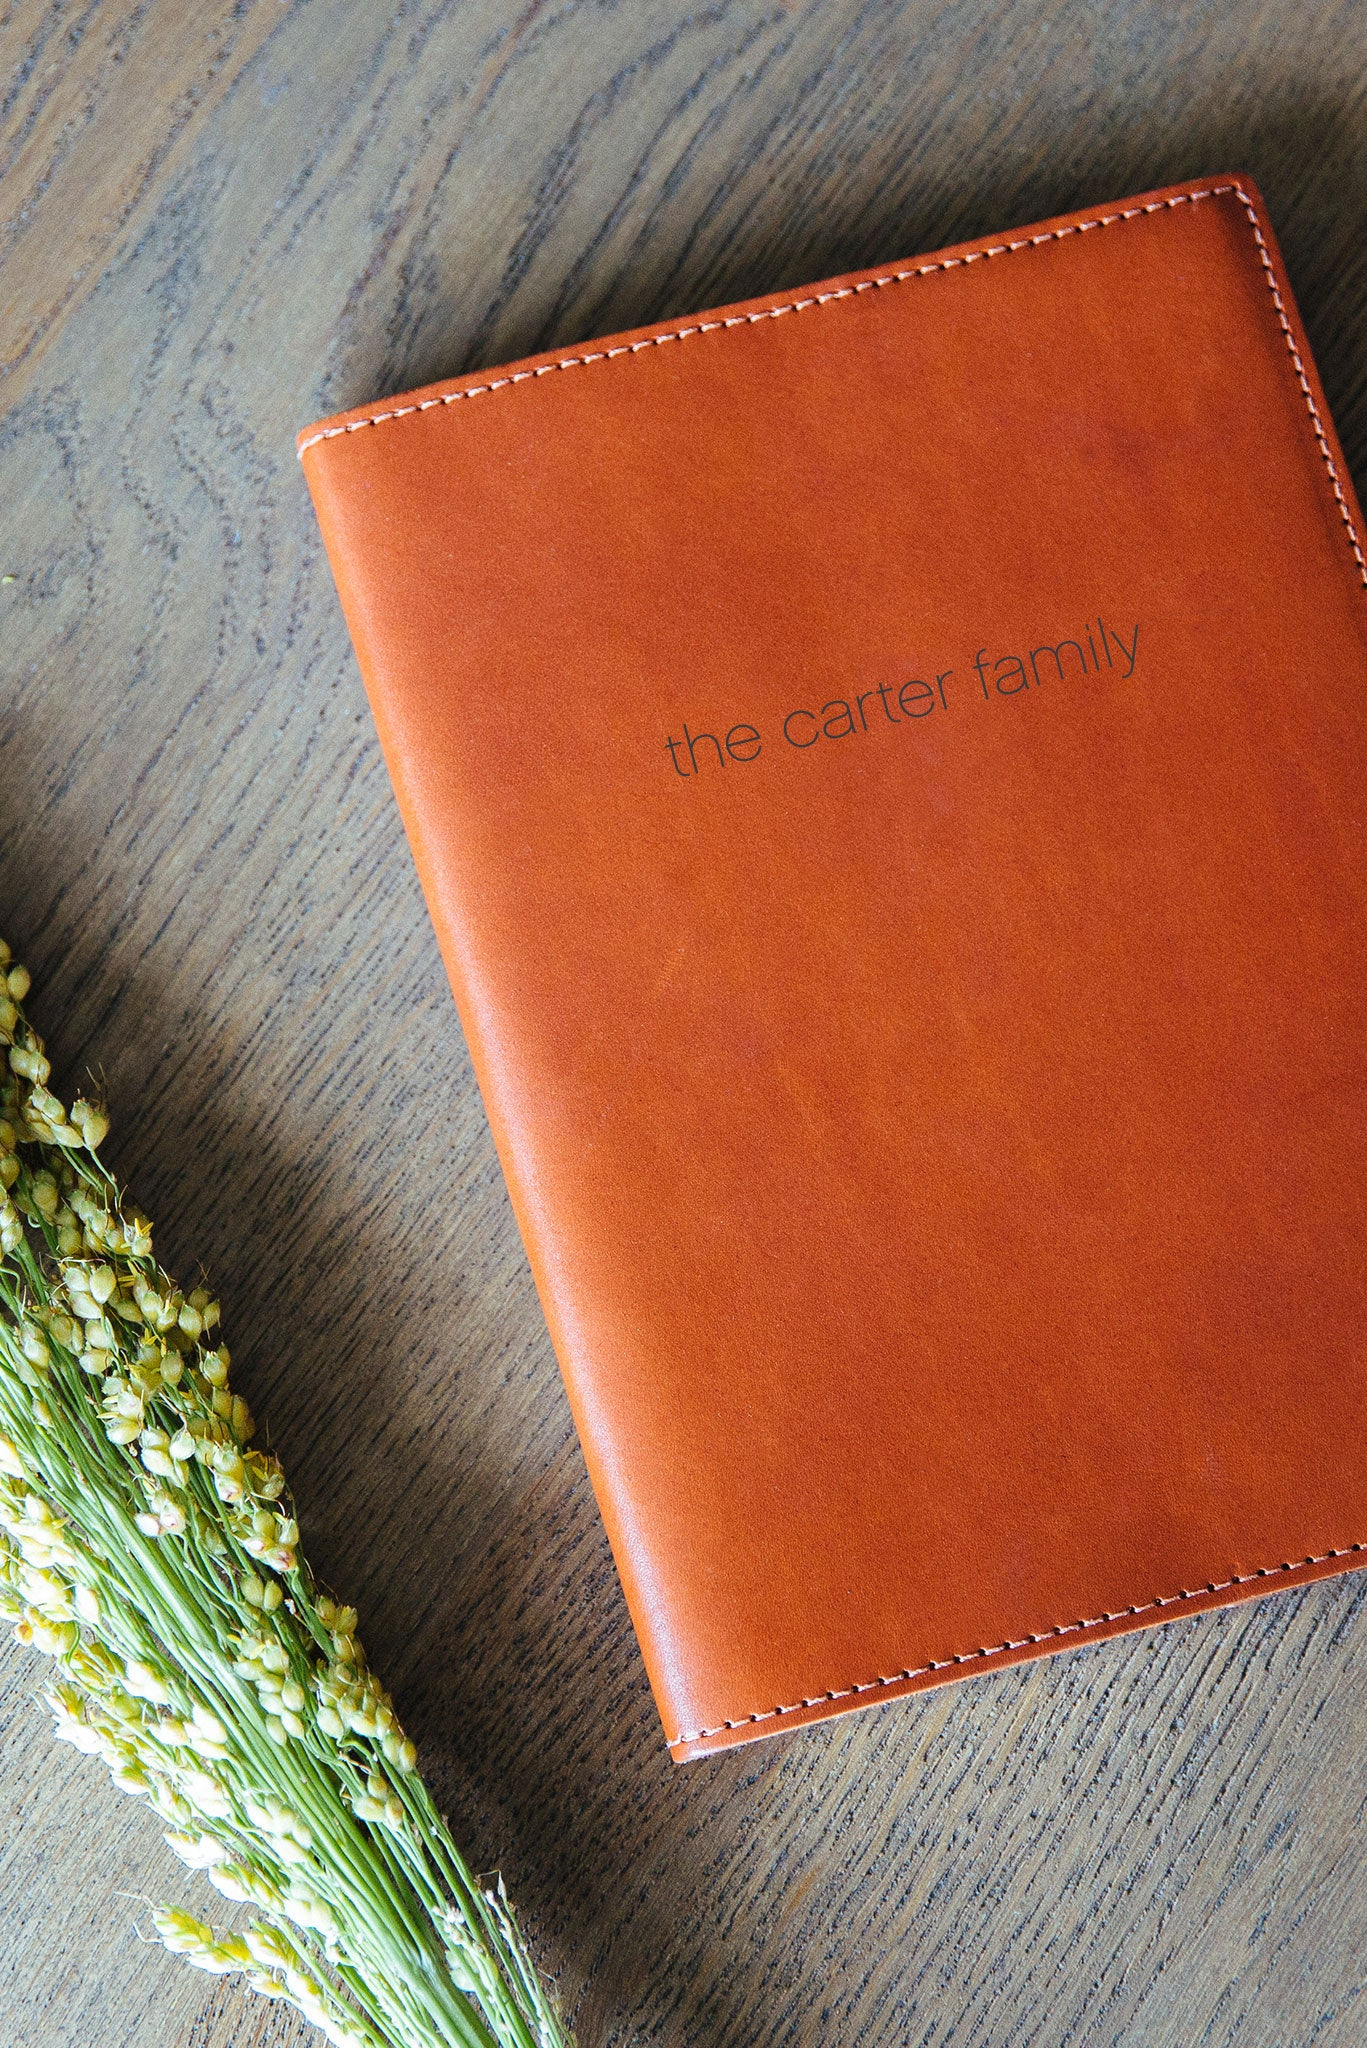 FOTO | Heirloom Cognac Leather Journal for the Holidays - refillable genuine leather journal cover can be personalized with gold foil initials, family monogram, phrase or personal graphic making it the perfect personalized gift.